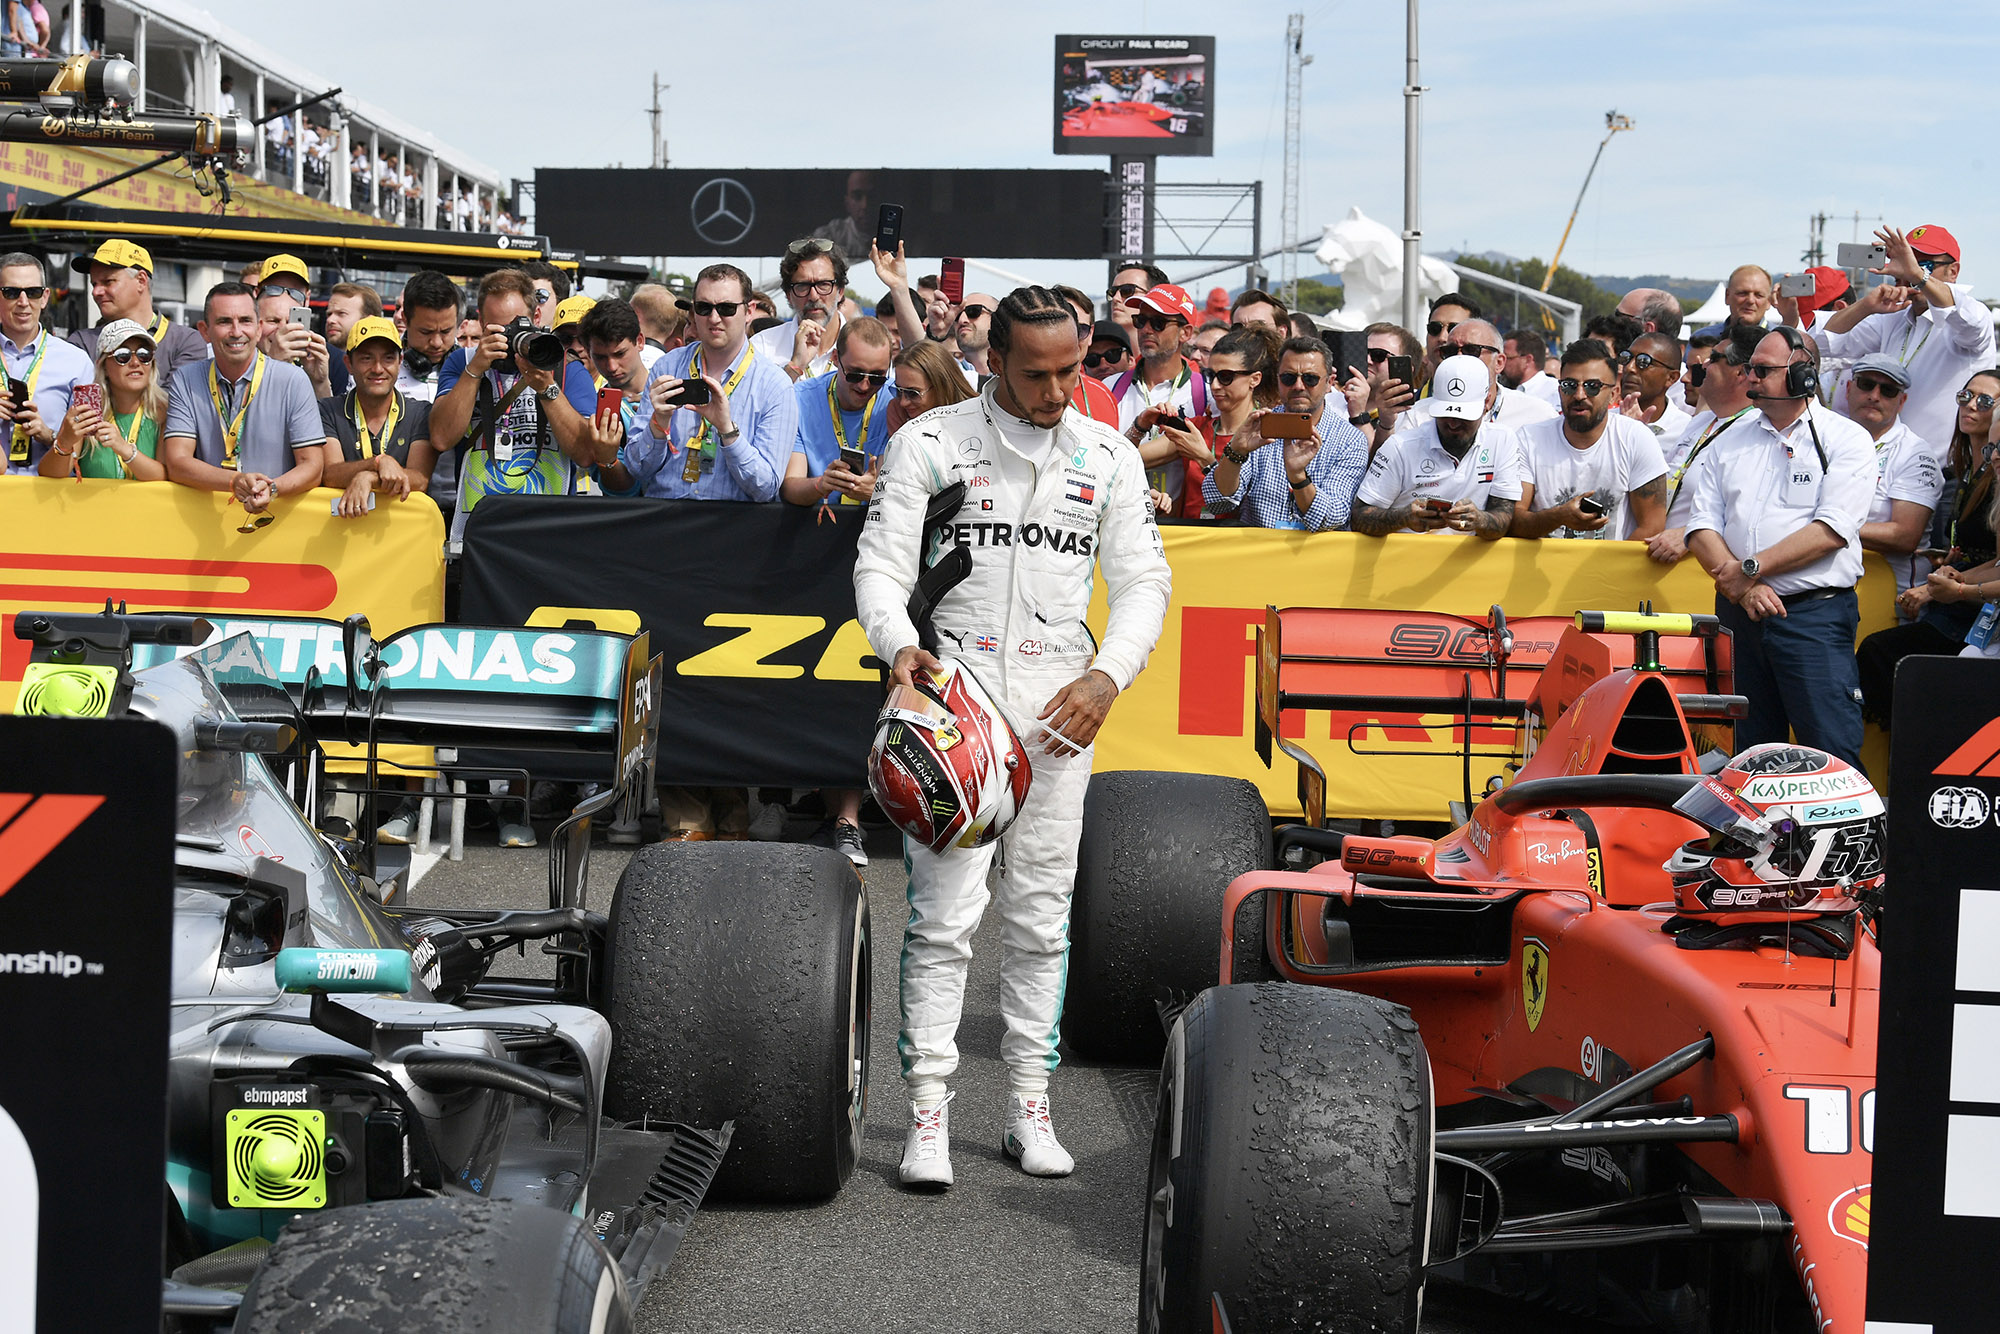 Lewis Hamilton looks at Charles Leclerc's Ferrari after the 2019 French Grand prix